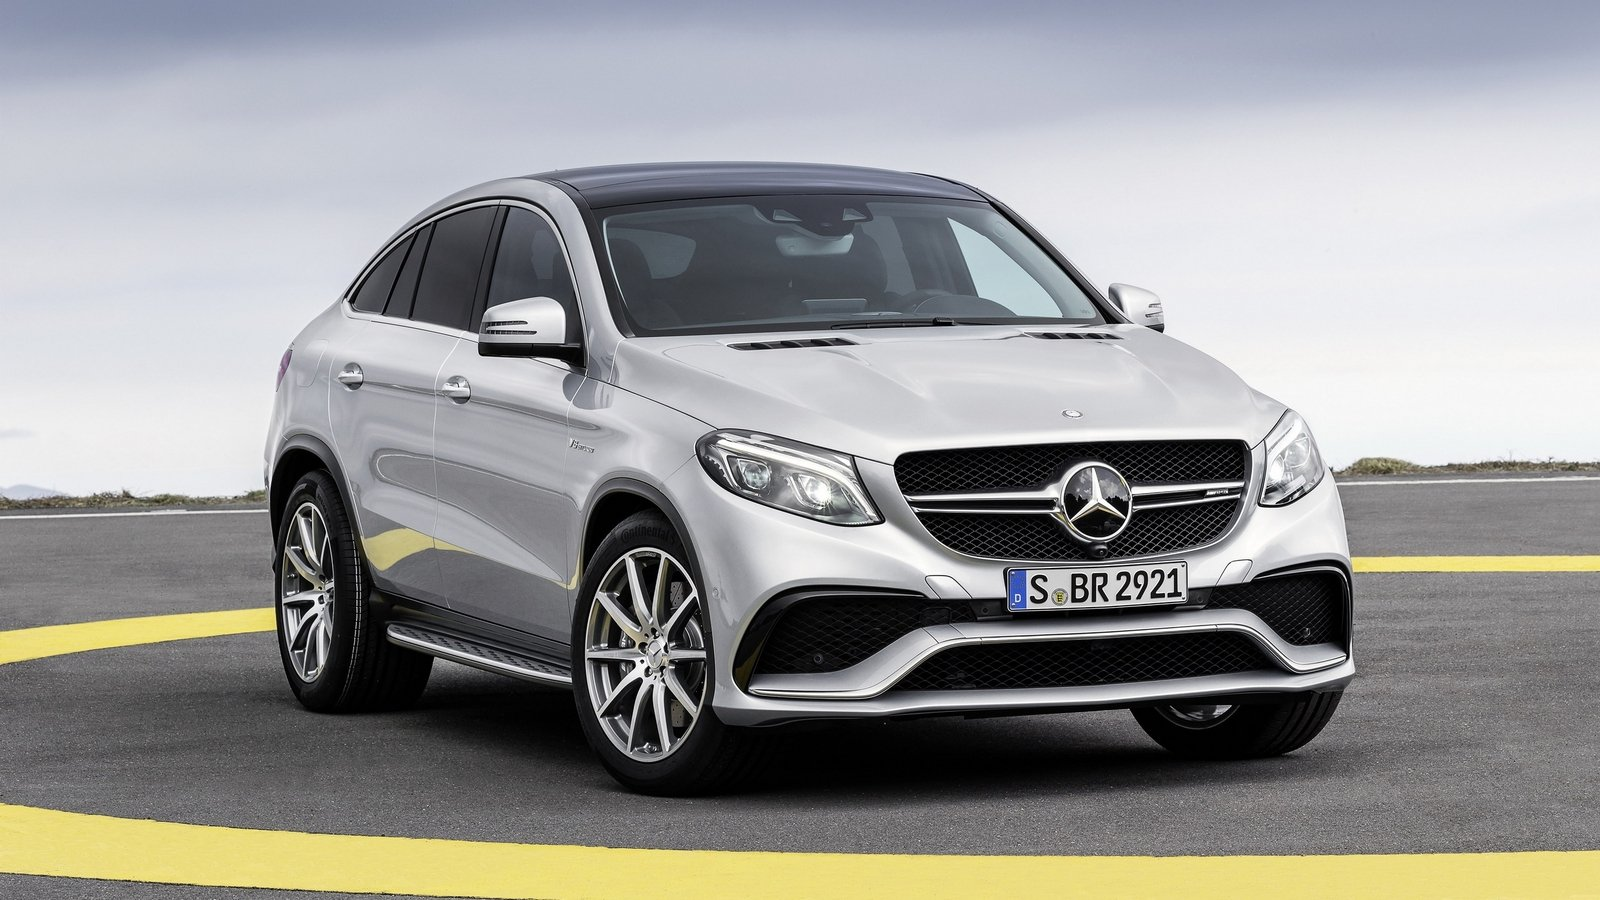 2016 Mercedes Benz Gle63 Amg Coupe Gallery 610186 Top Speed